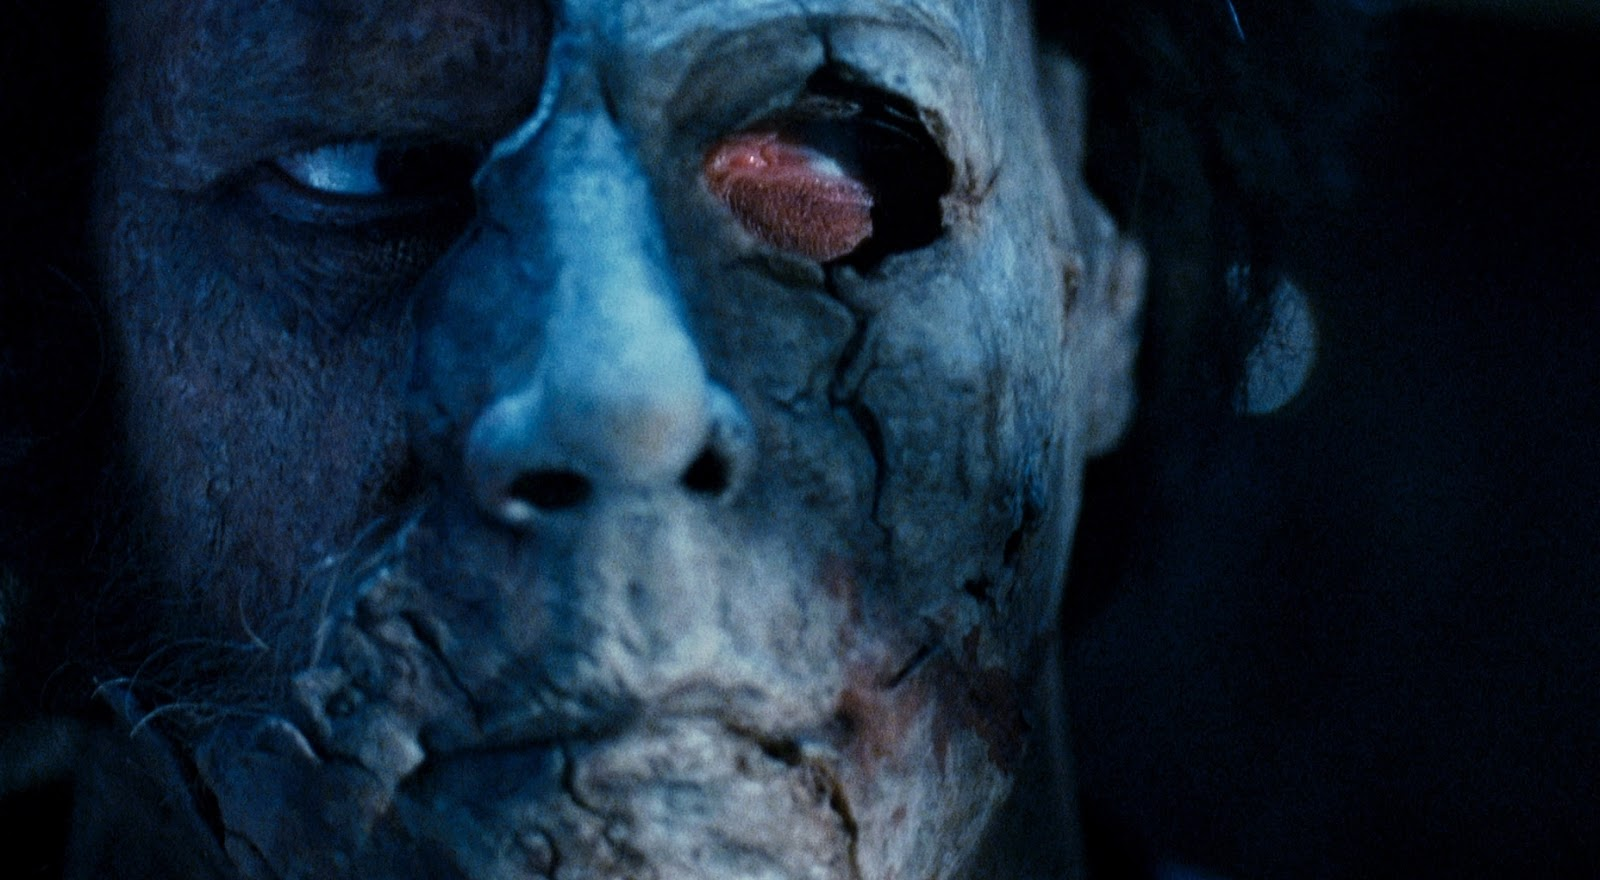 31 DAYS OF MICHAEL MYERS: Masks